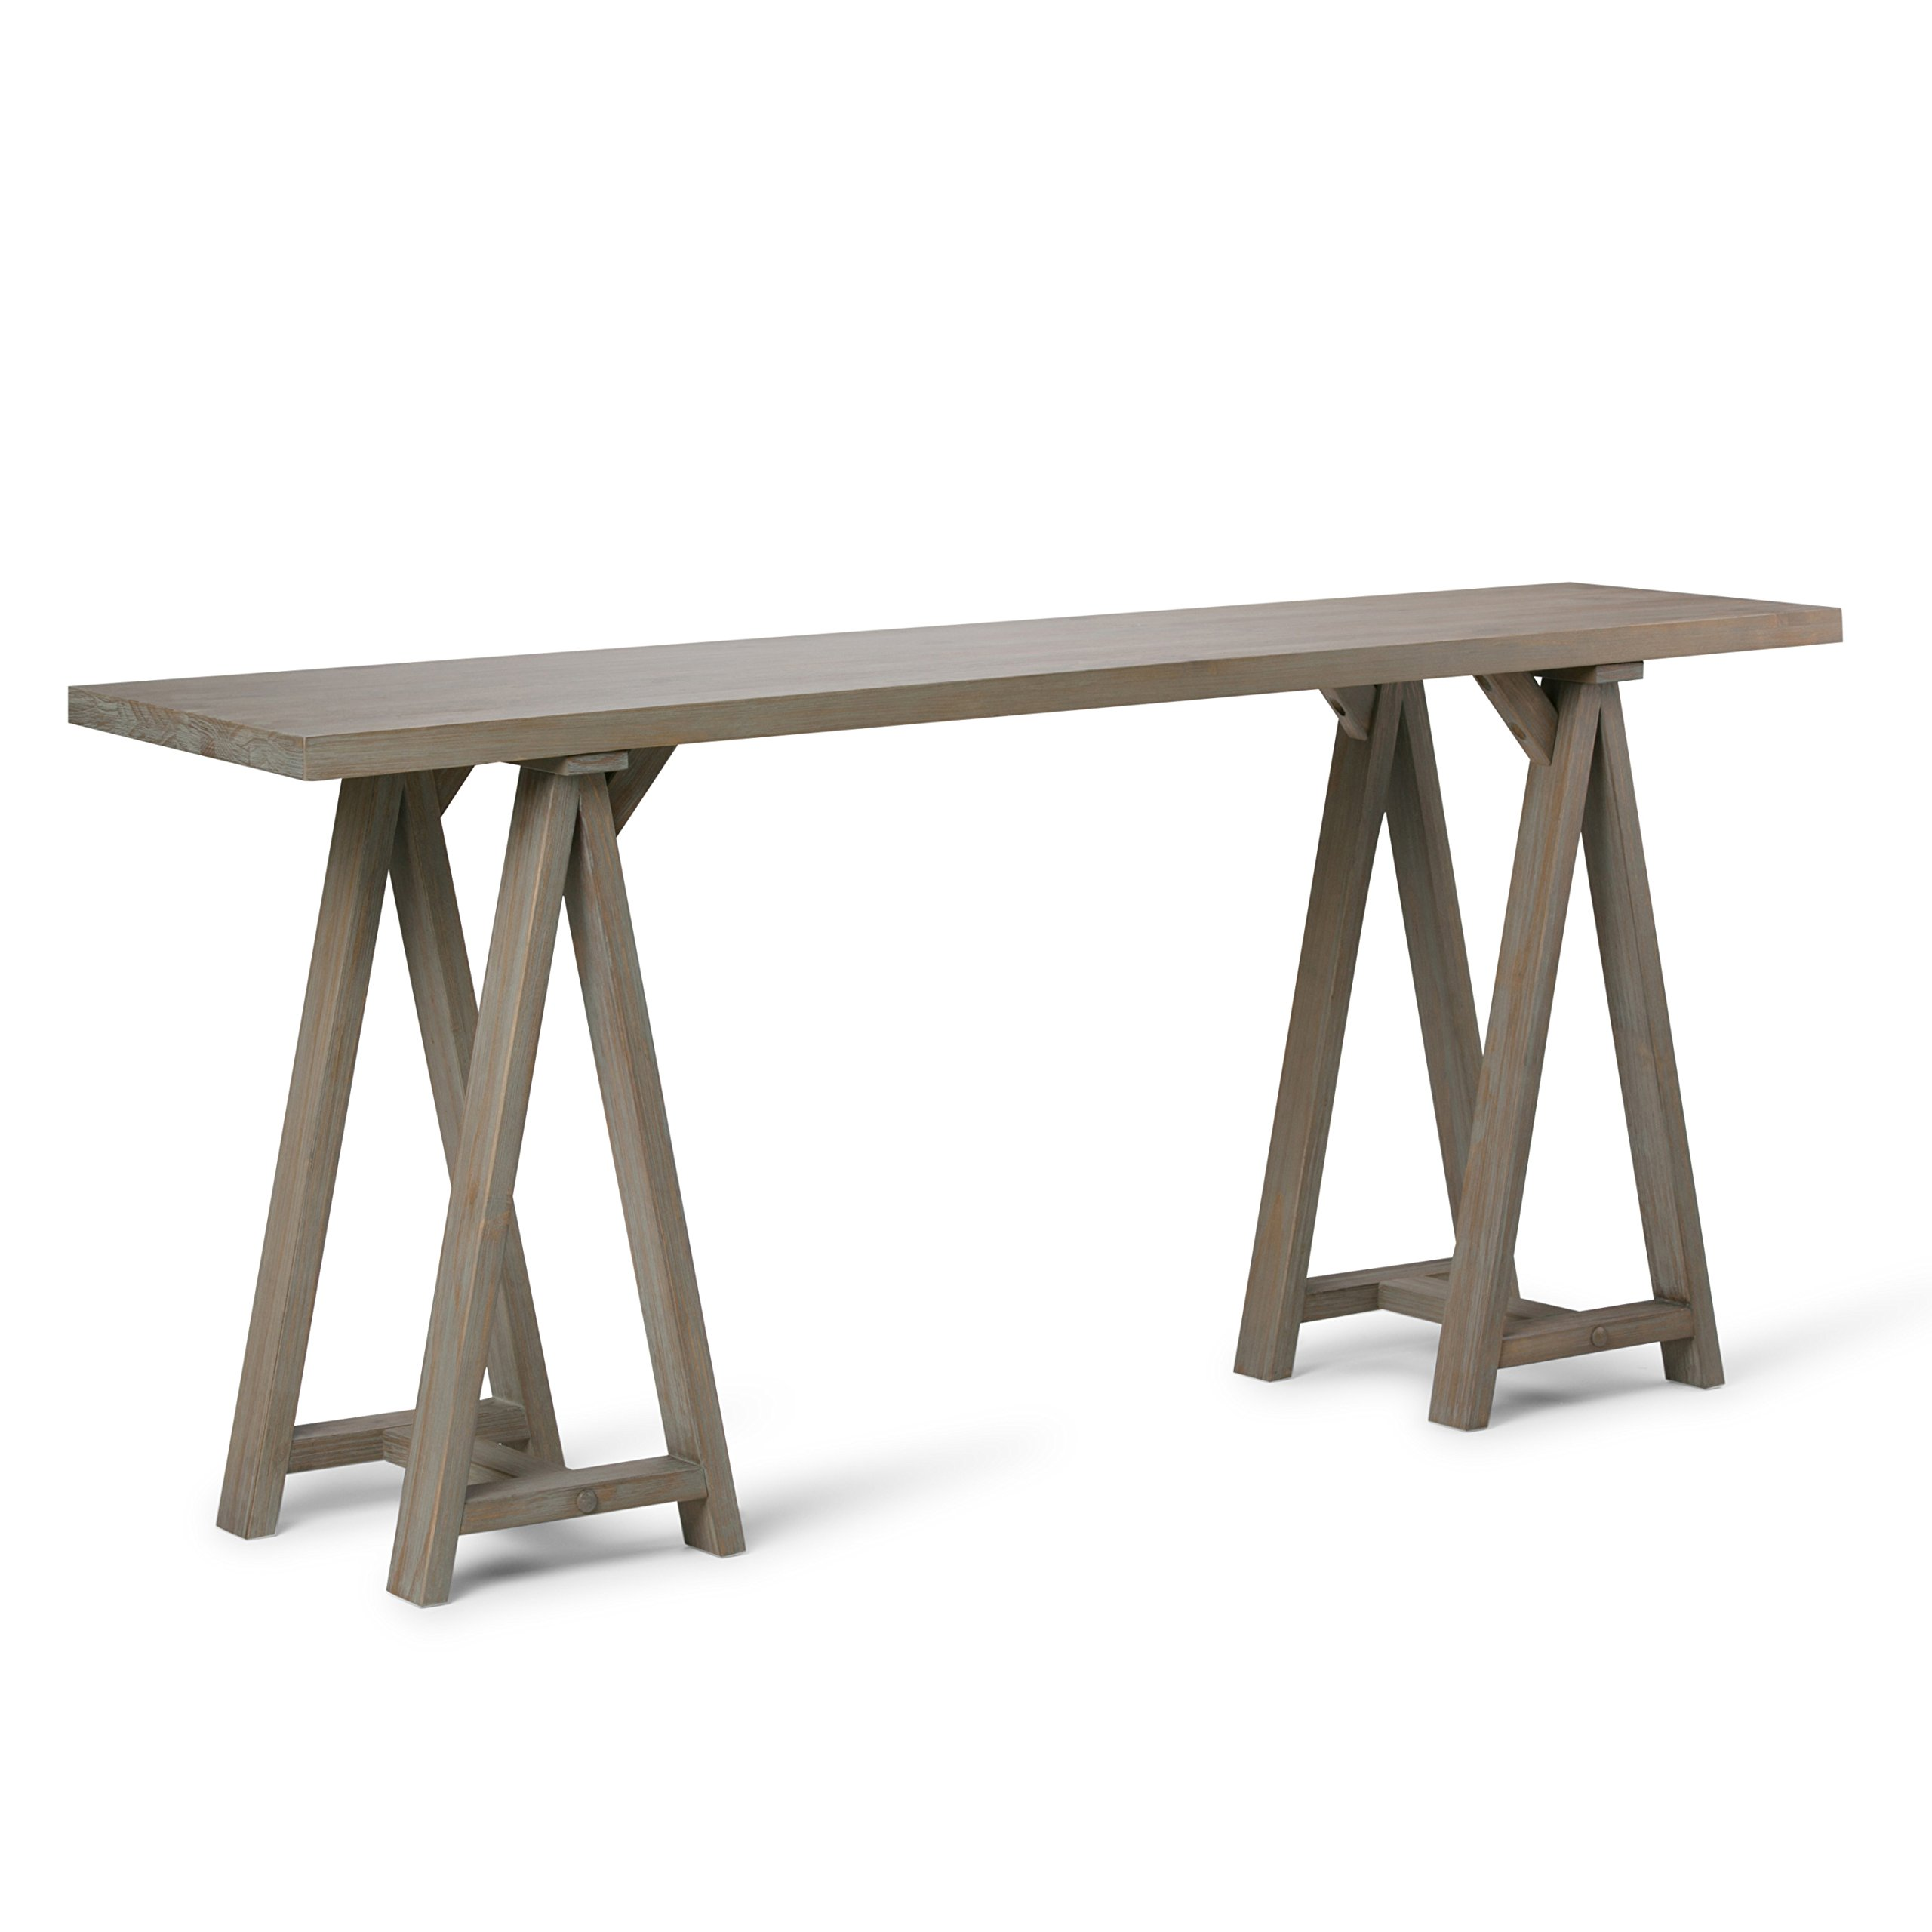 Simpli Home 3AXCSAW-03W-GR Sawhorse Solid Wood 66 inch Wide Modern Industrial Wide Console Sofa Table in Distressed Grey by Simpli Home